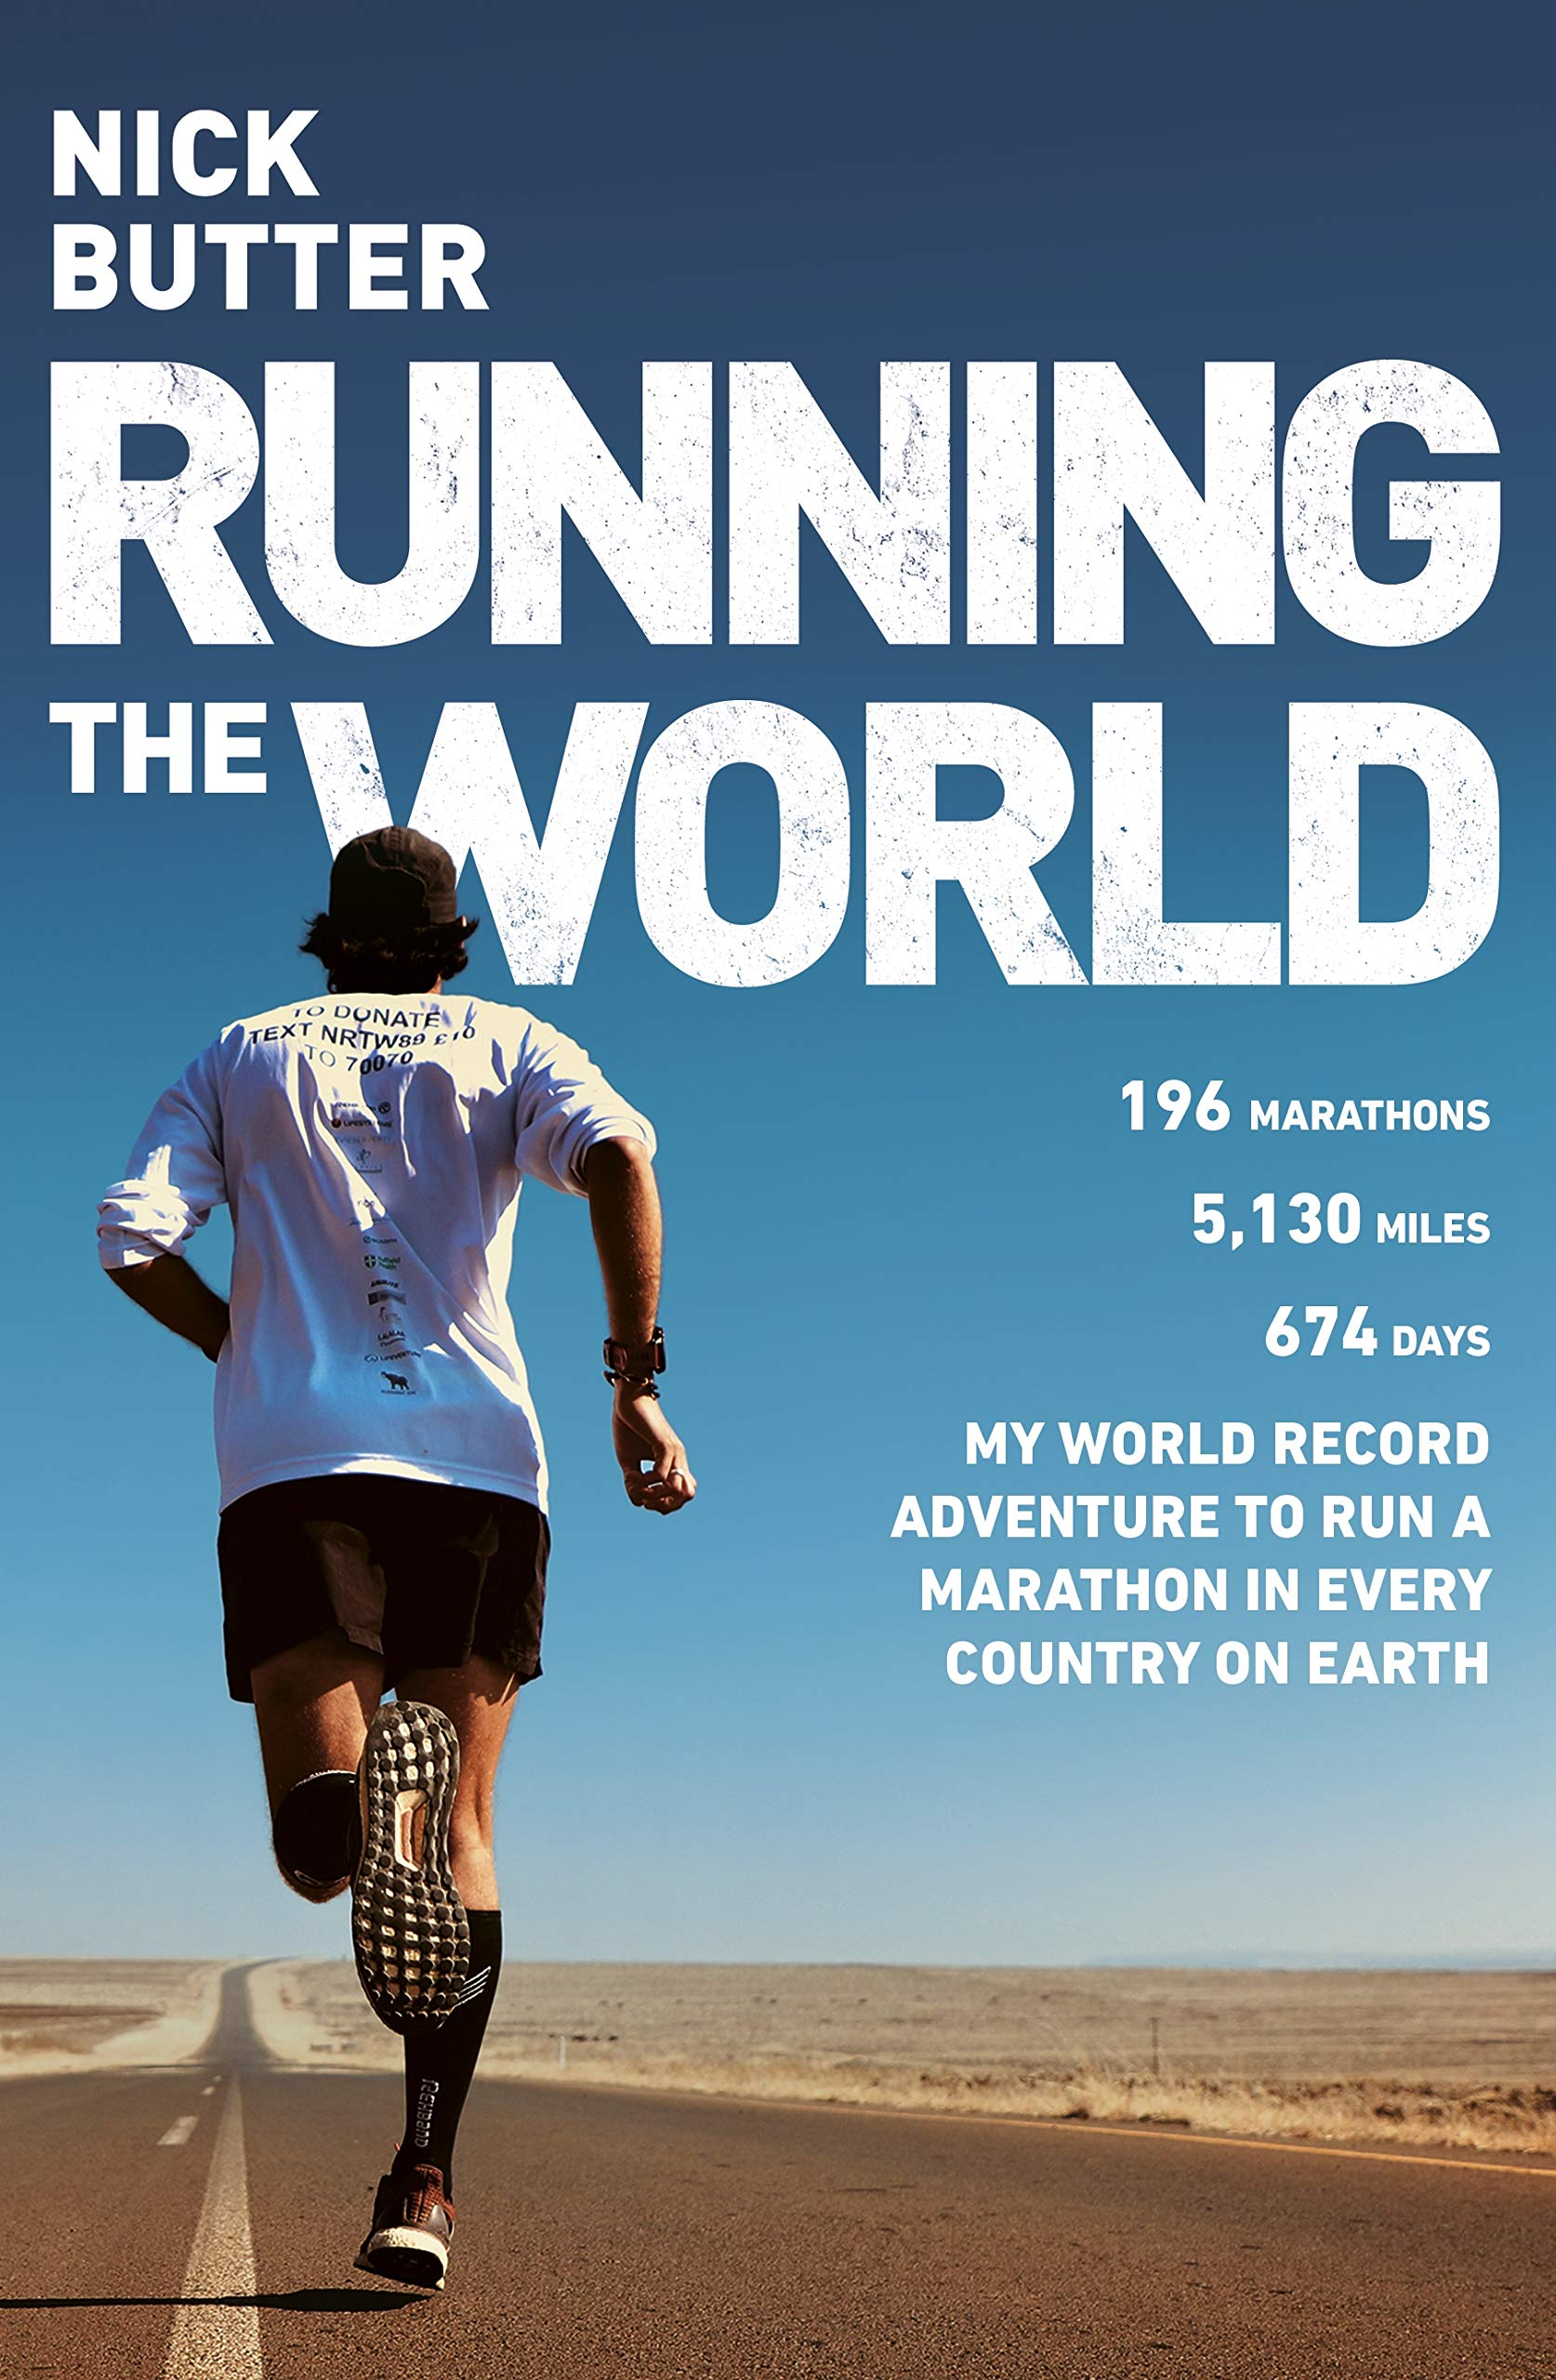 Running The World 196 Marathons In 196 Countries One Record Breaking Adventure Butter Nick 9781787631724 Amazon Com Books